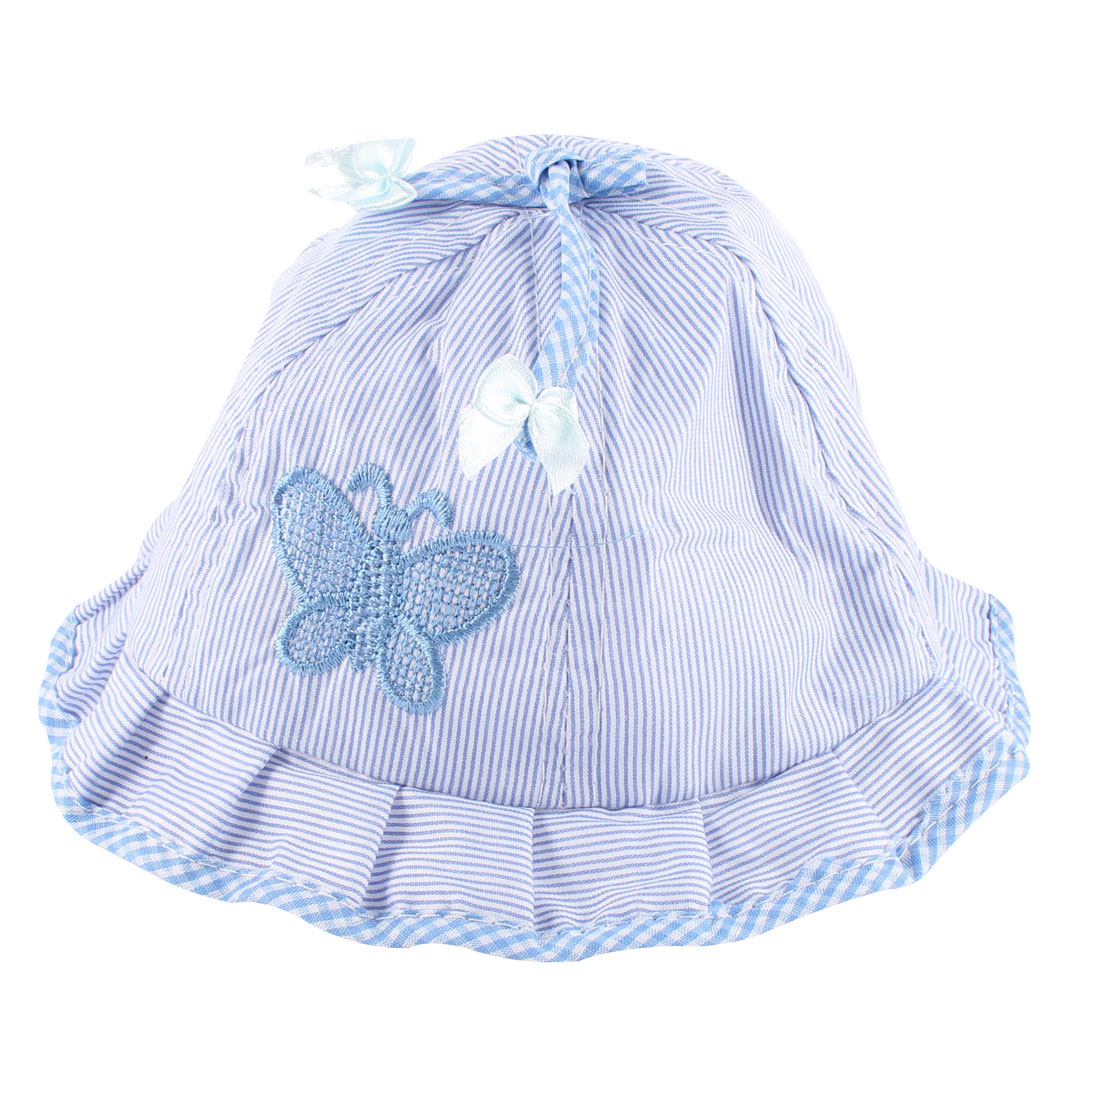 0-6 Months Baby Girl Butterfly Decor Wavy Brim Design Bob Hat Blue White w Neck Strap